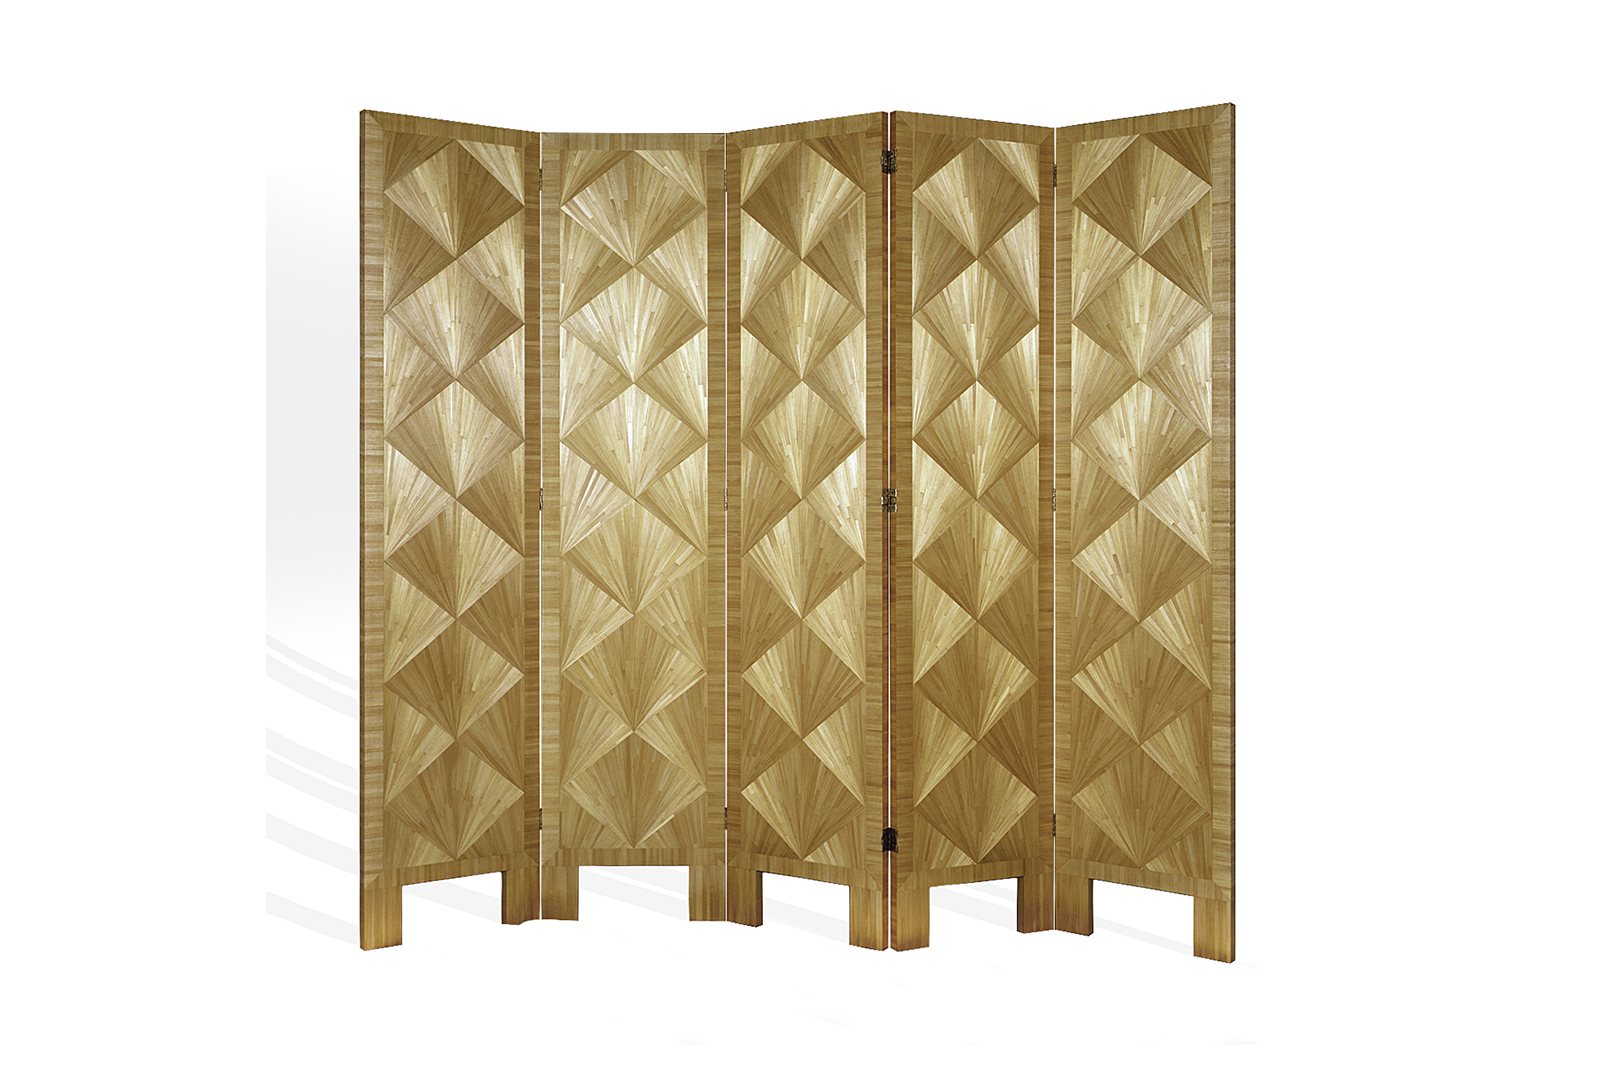 J.m. Frank Inspired Screen In Straw Marquetry With Fan Pattern